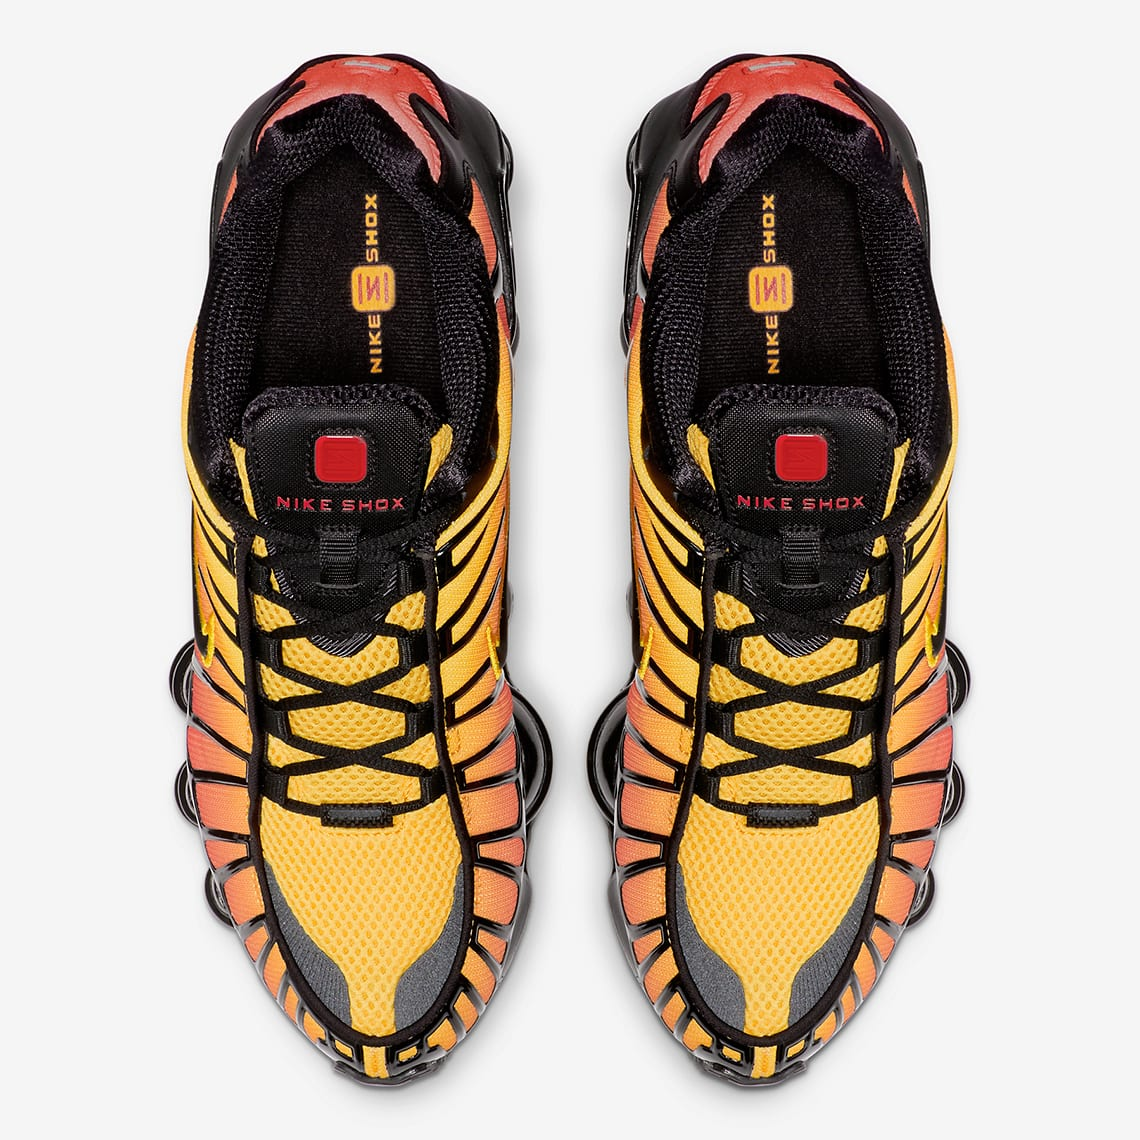 info for 09949 81b47 Nike's Classic Shox TL Sneaker Gets a Sunrise-Themed Update